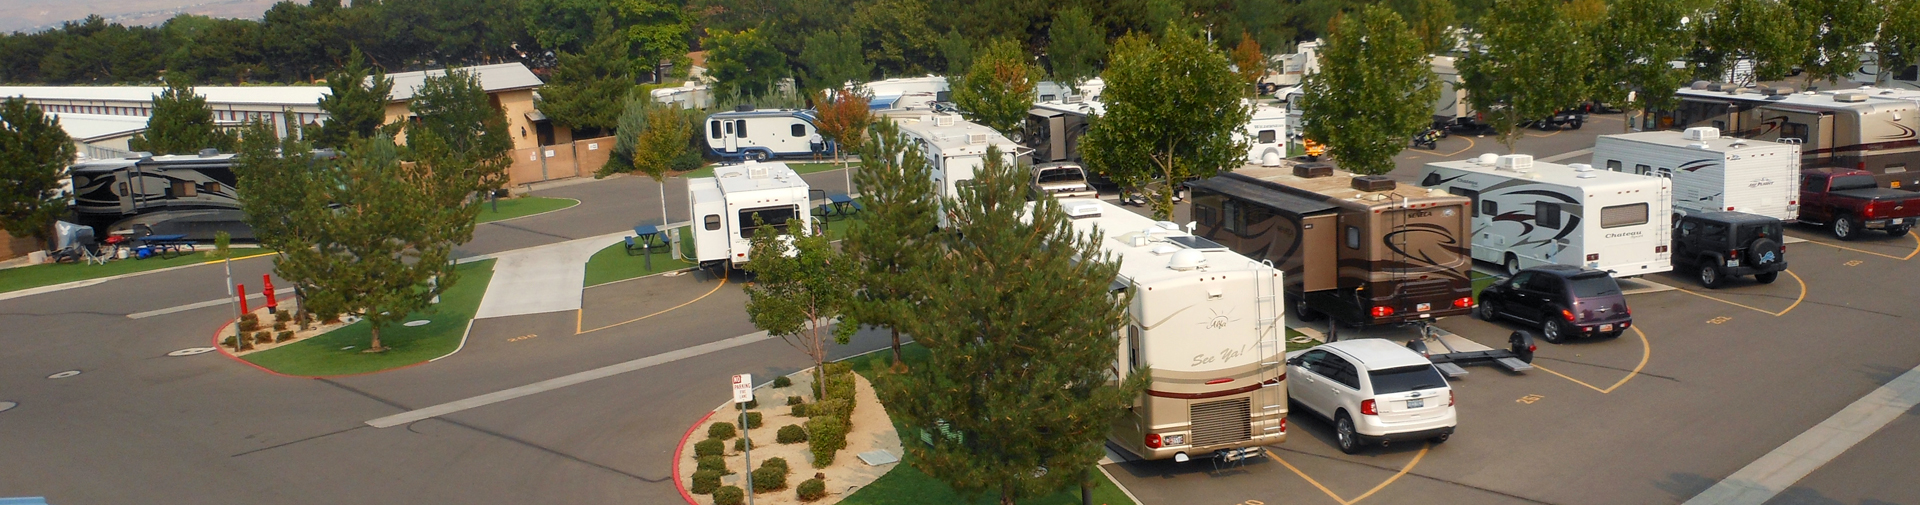 Rv Parks In Nevada Park Imghd Co